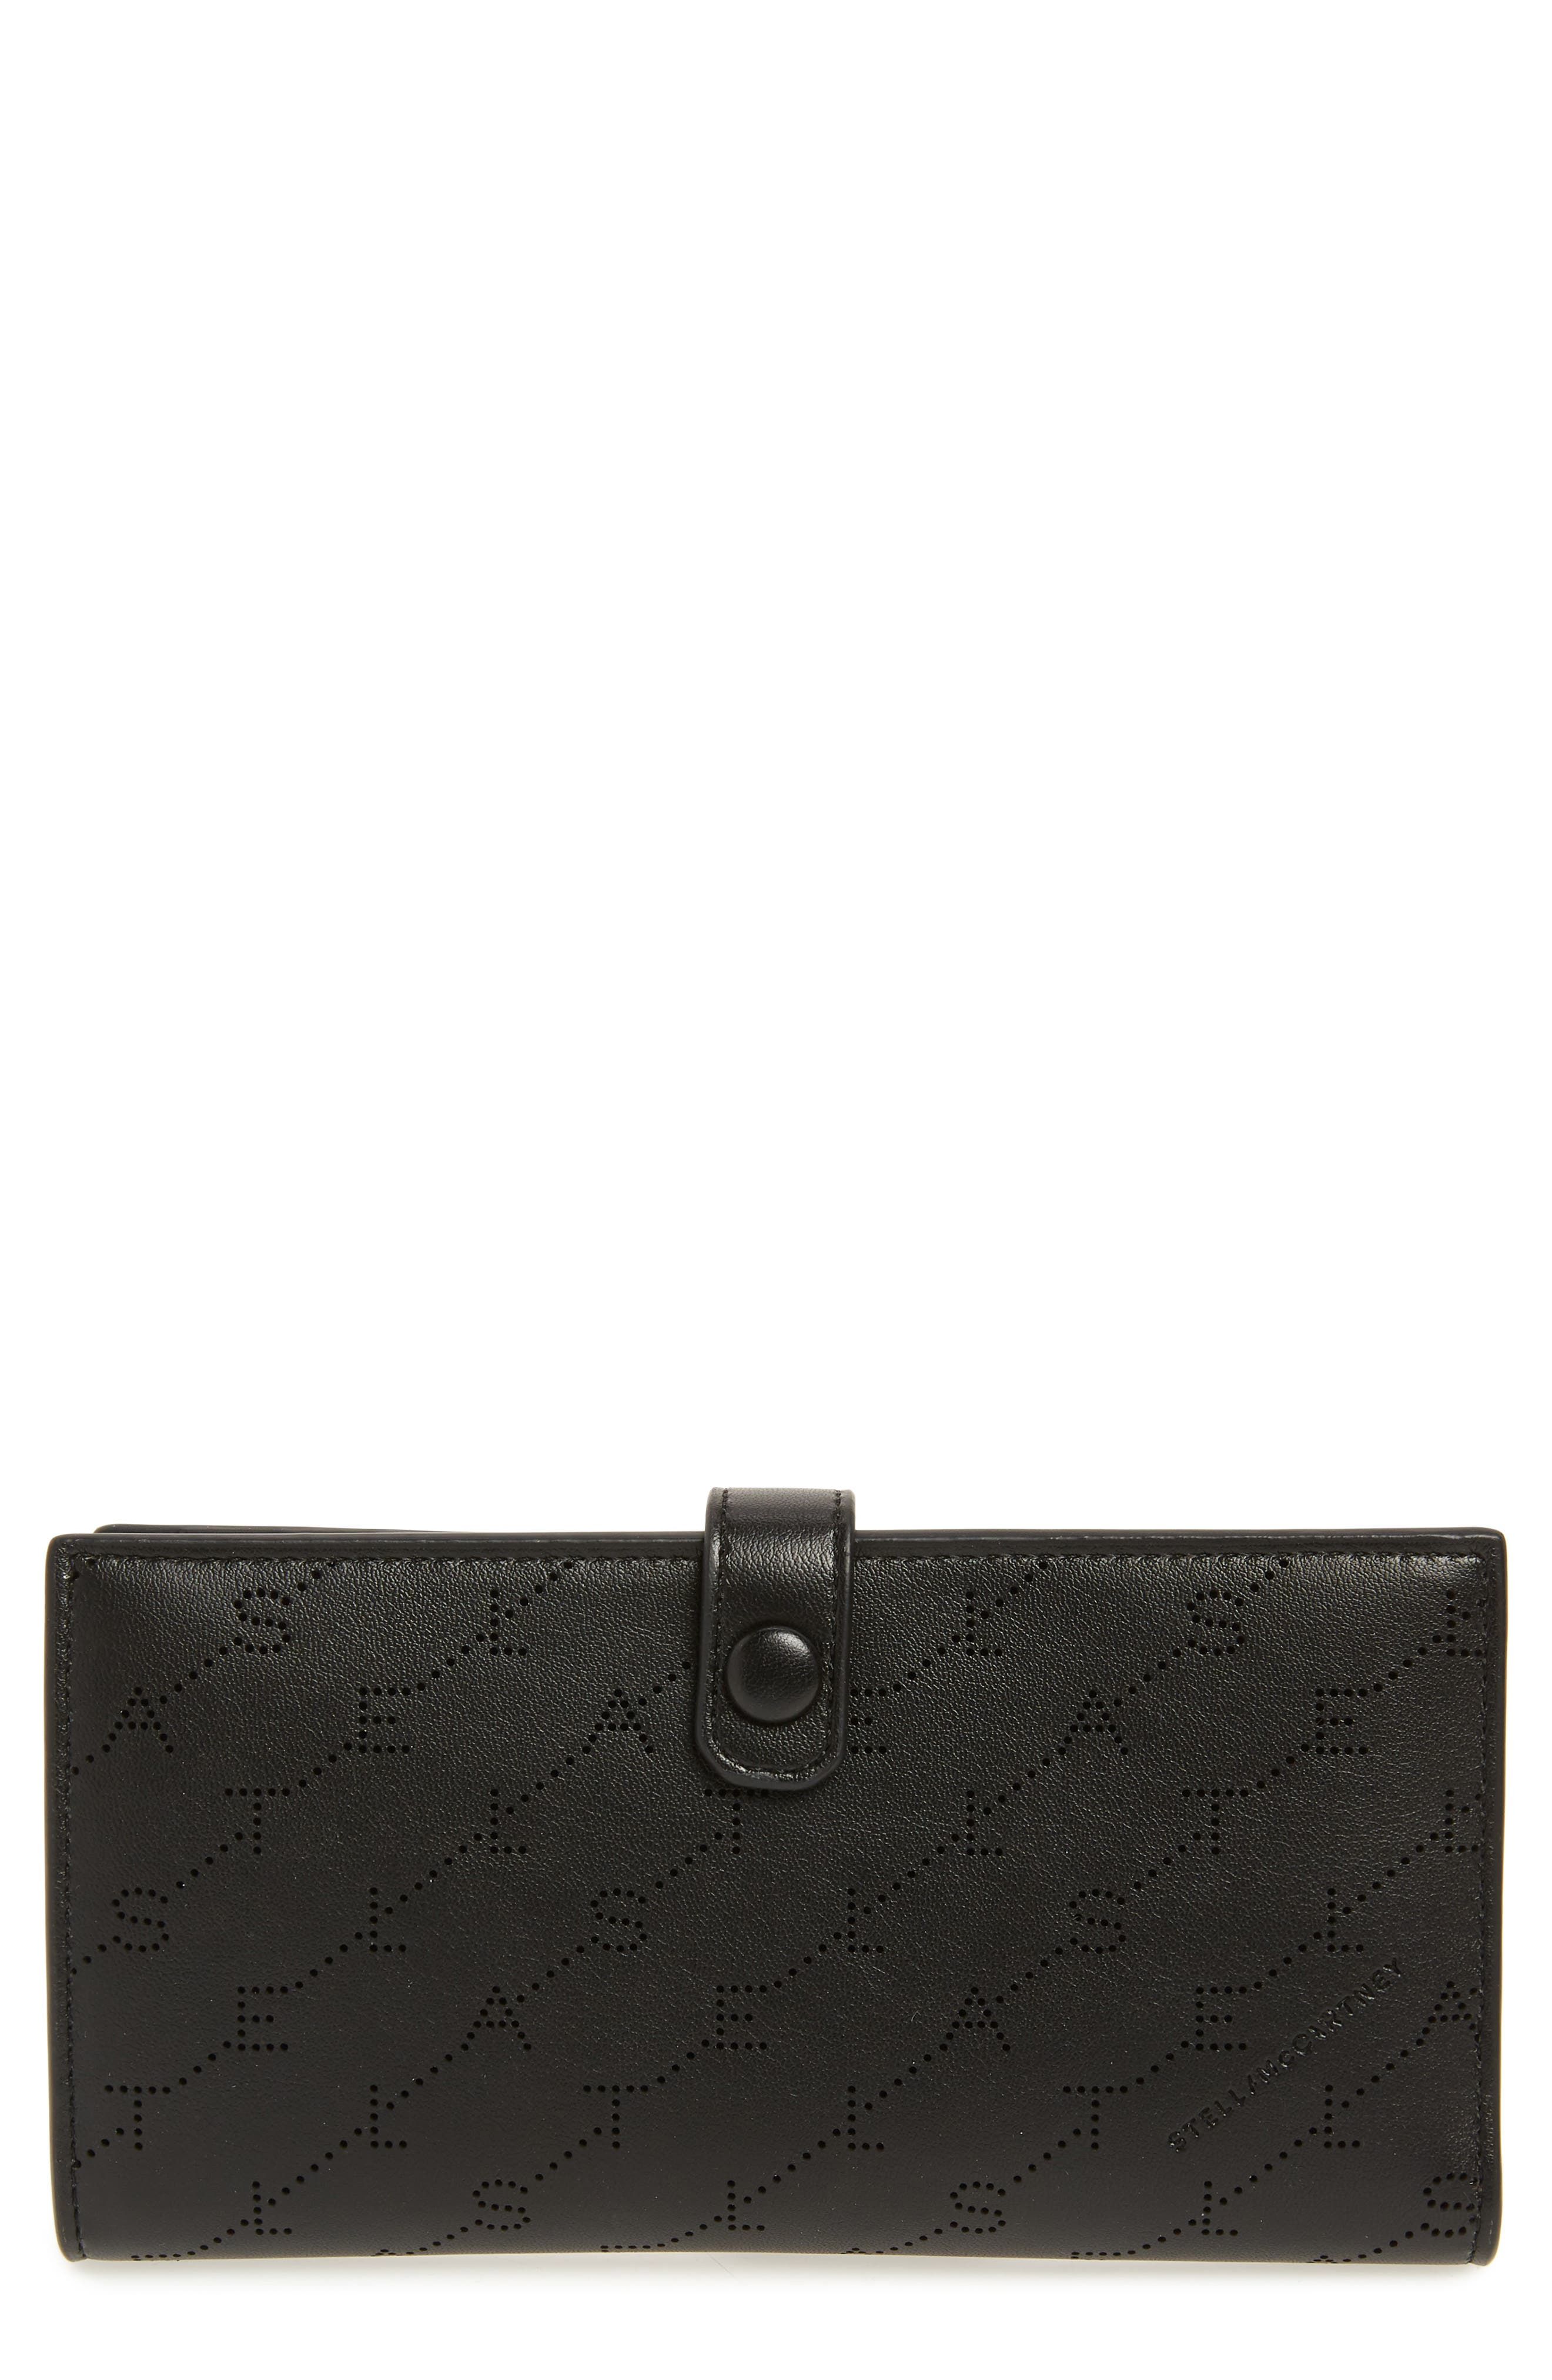 STELLA MCCARTNEY Logo Perforated Faux Leather Continental Wallet, Main, color, BLACK